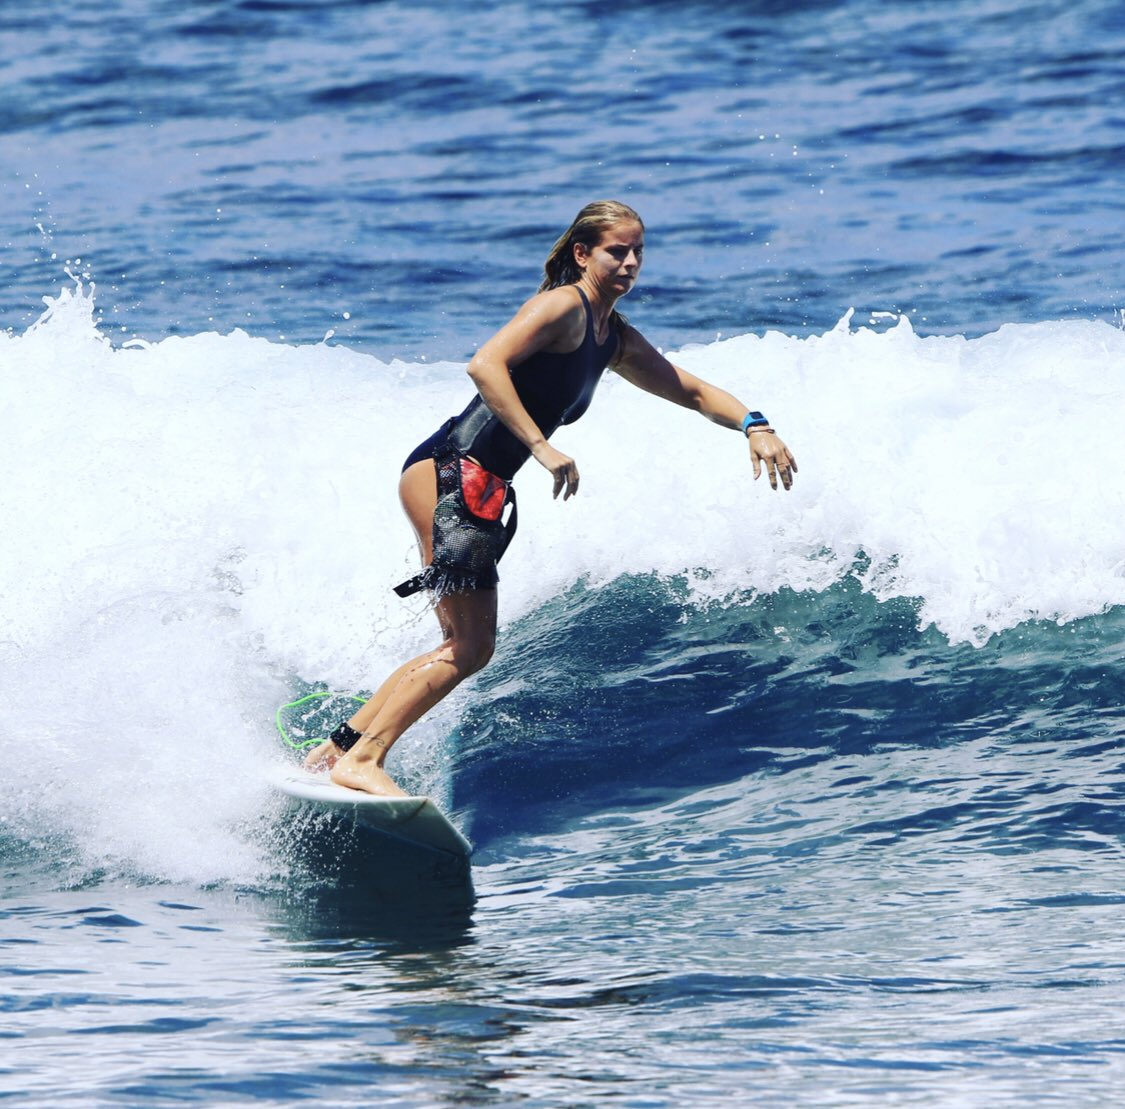 Happy #InternationalSurfingDay Every scuba diver and surfer an ocean cleaner - Read this inspiring #MyOcean community story  https://www. projectaware.org/news/trshbg     #oceansolutions  #oceanpollution #oceanoptimism #positivechange <br>http://pic.twitter.com/KBKfR5BR4W